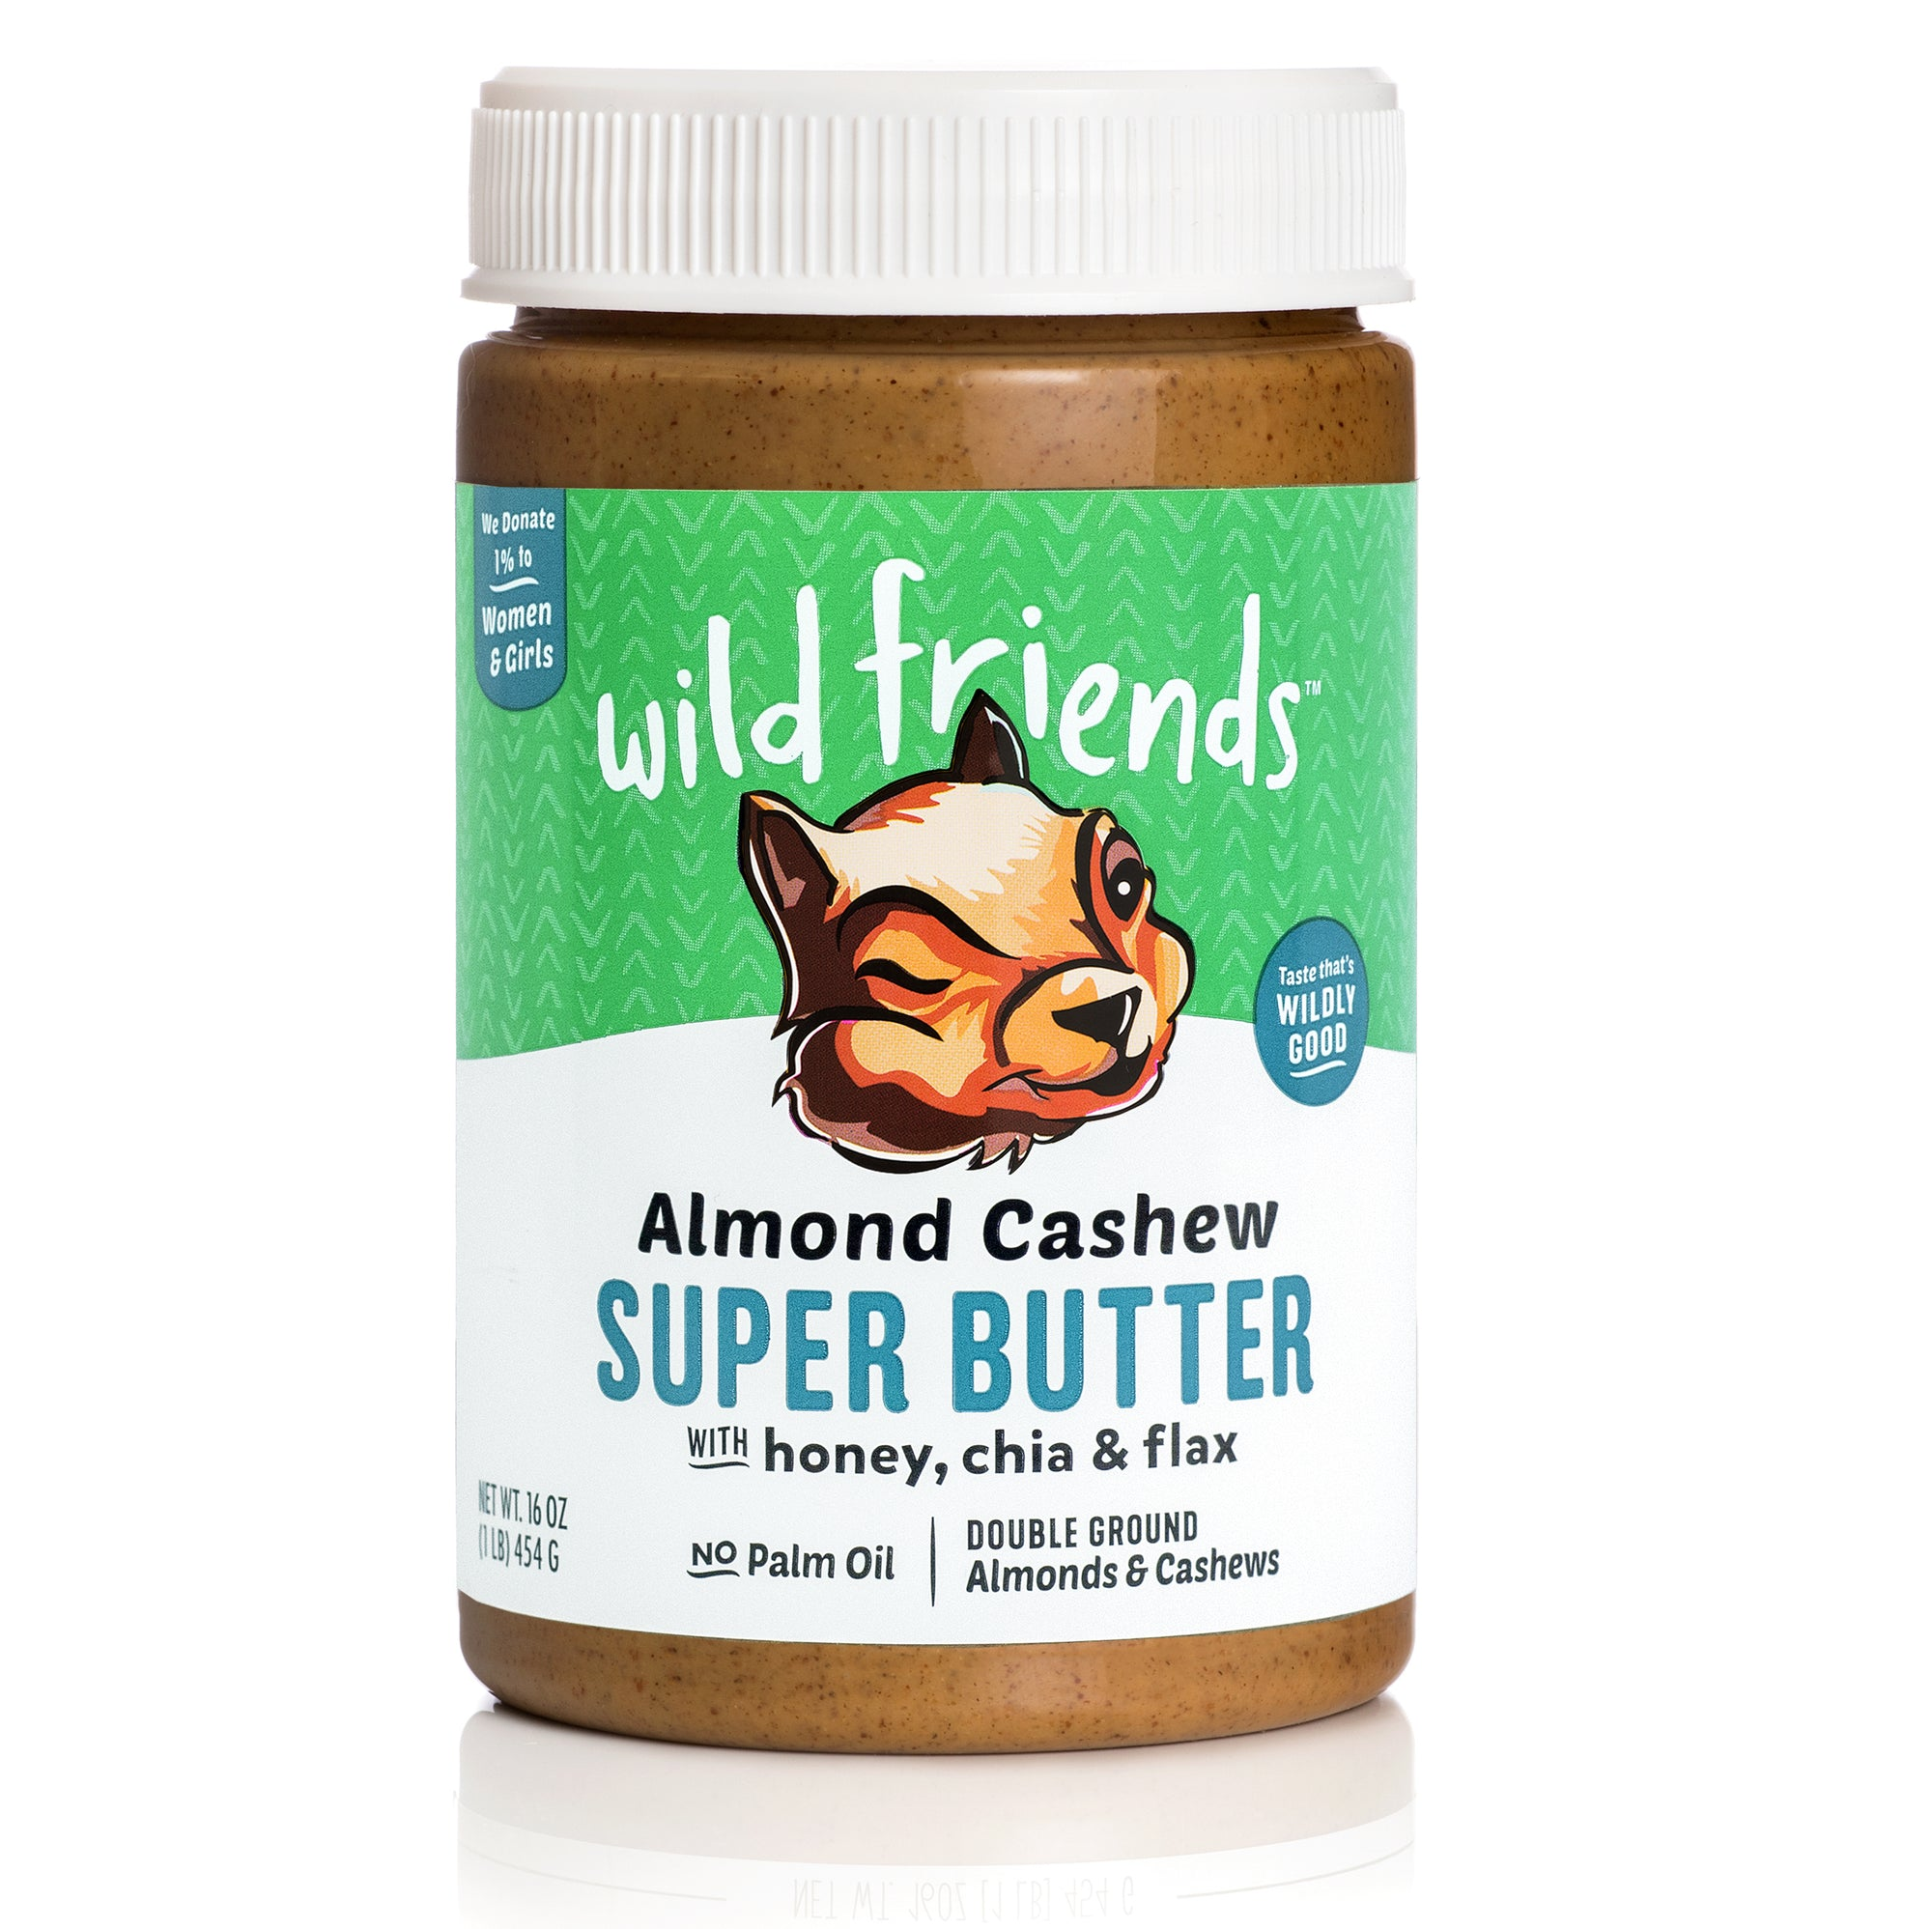 Almond Cashew Super Butter - Single Jar